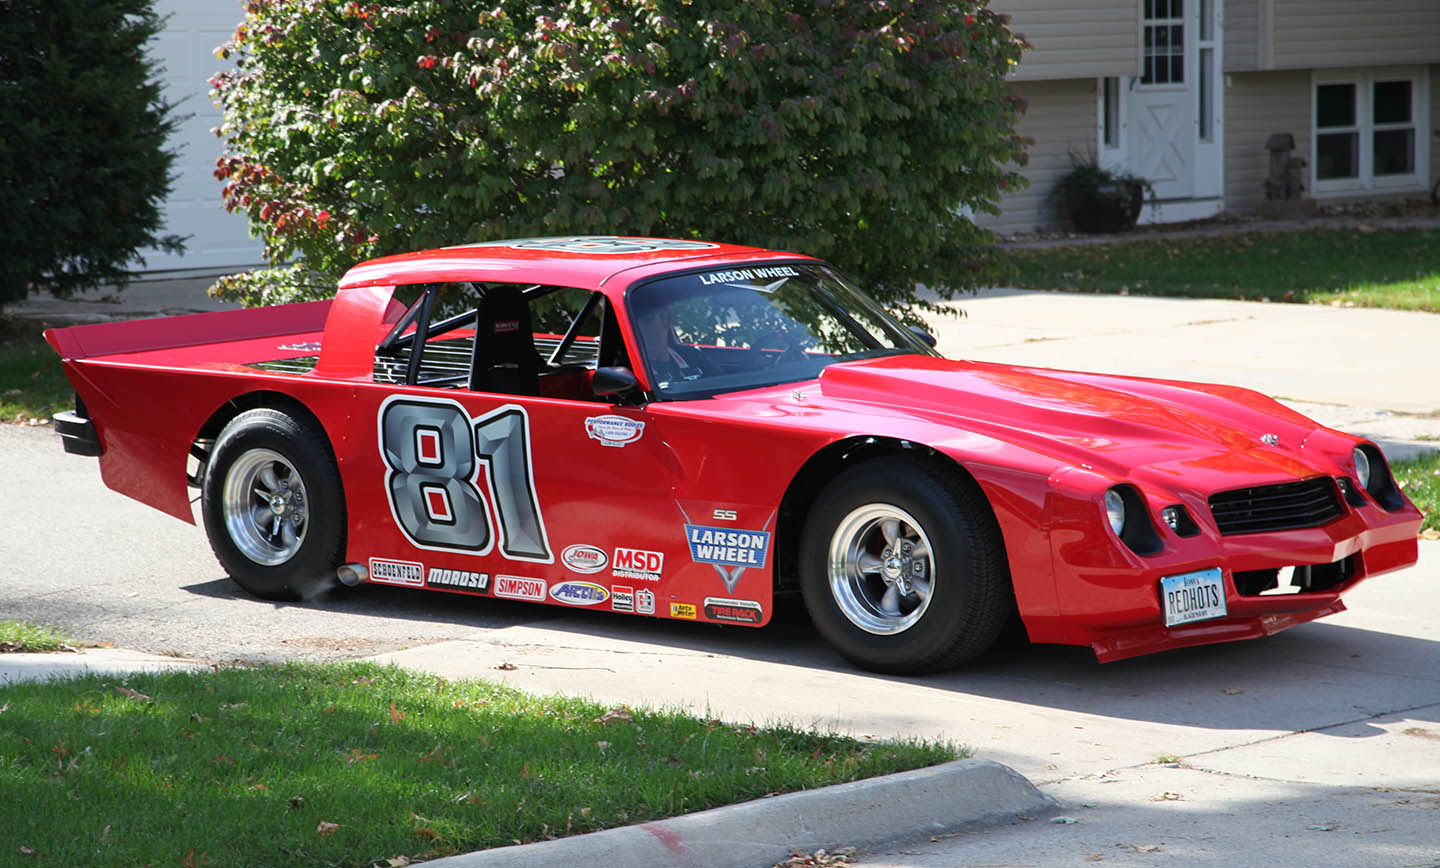 Features - Vintage Stock Cars for the street... | Page 14 | The H.A.M.B.